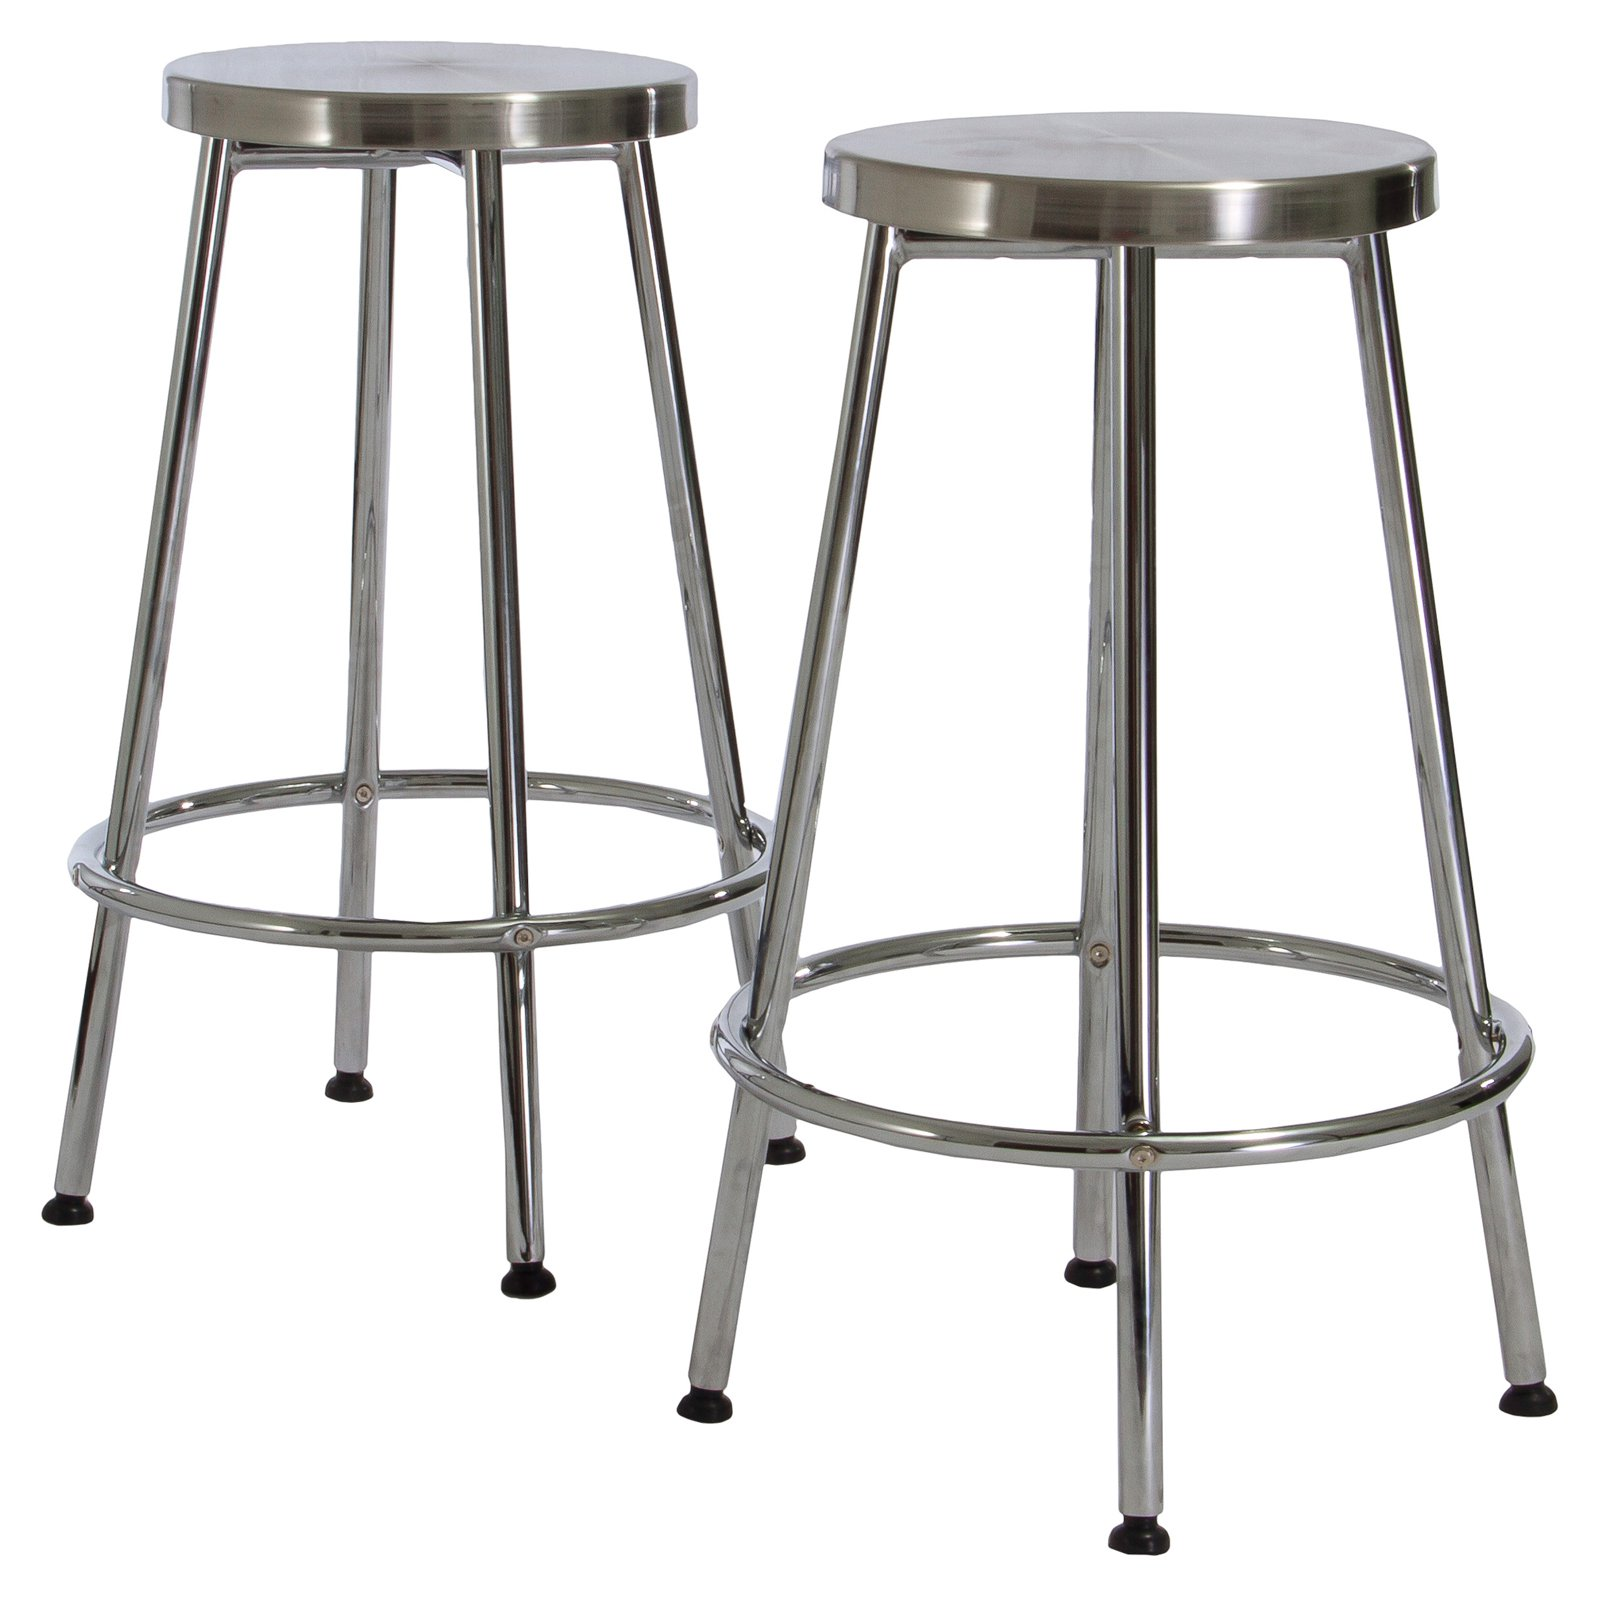 Mayworth Chrome Backless Bar Stools - 2 Pack